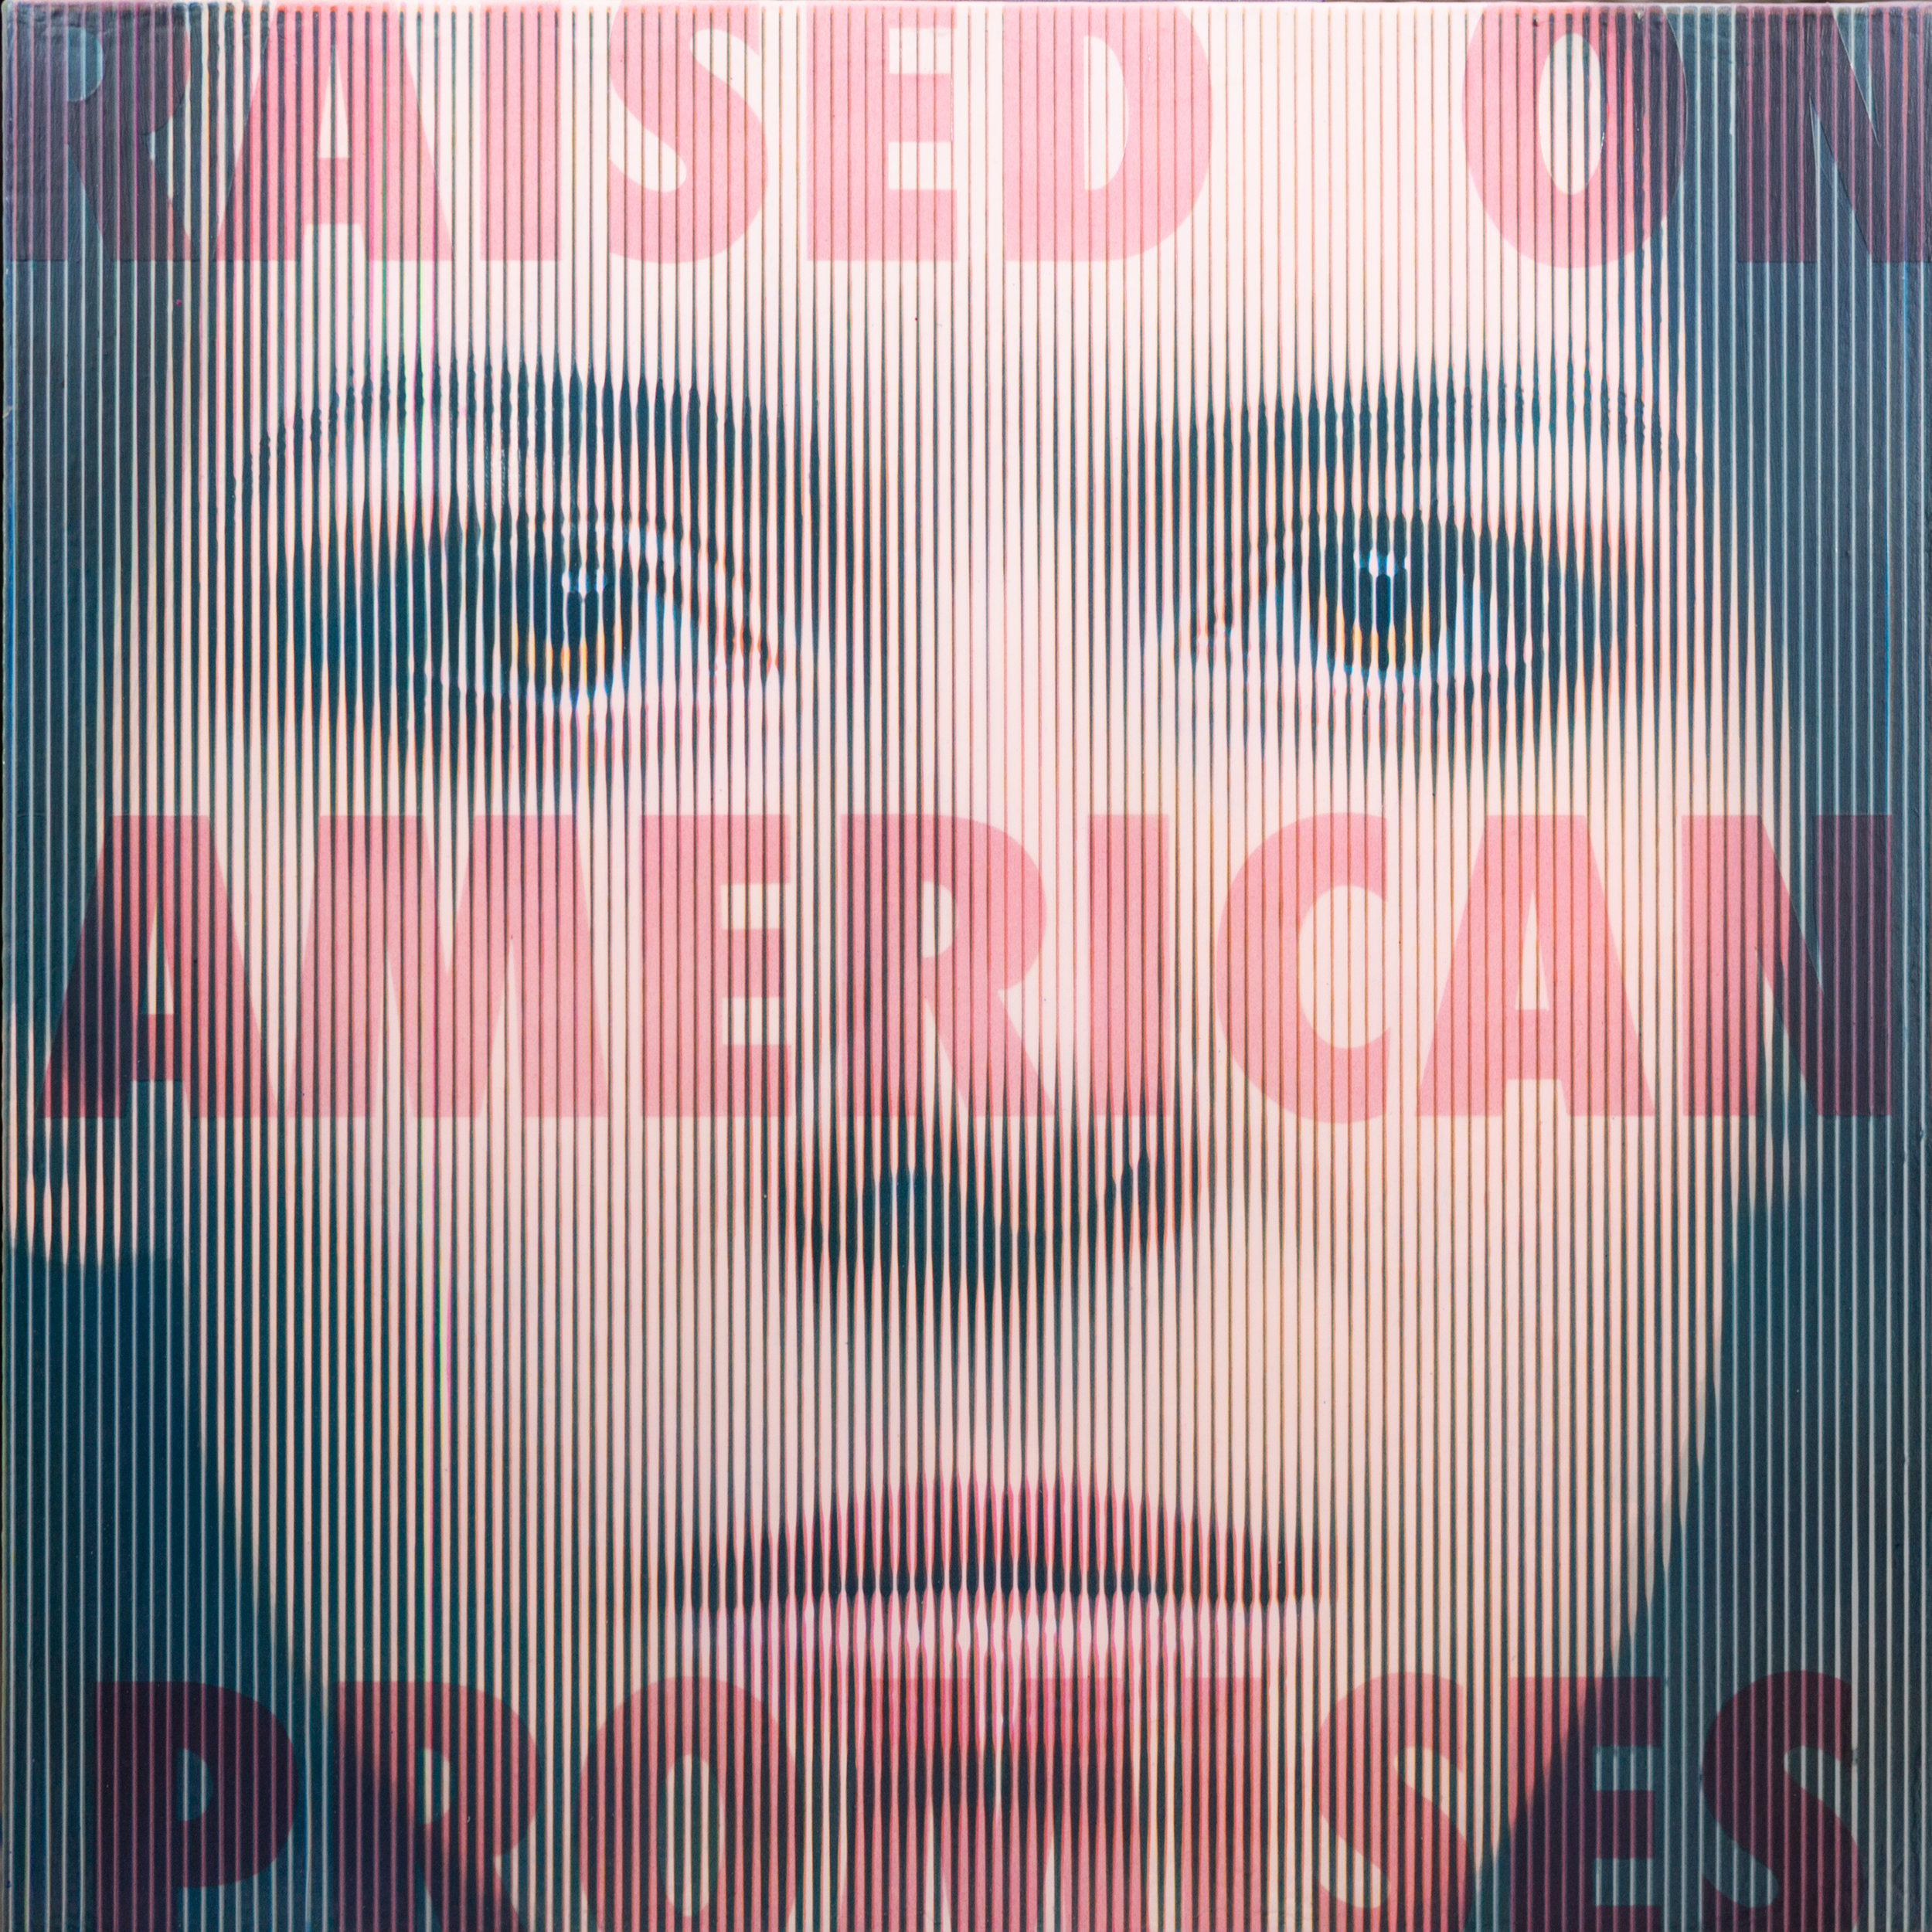 Raised on American Promises